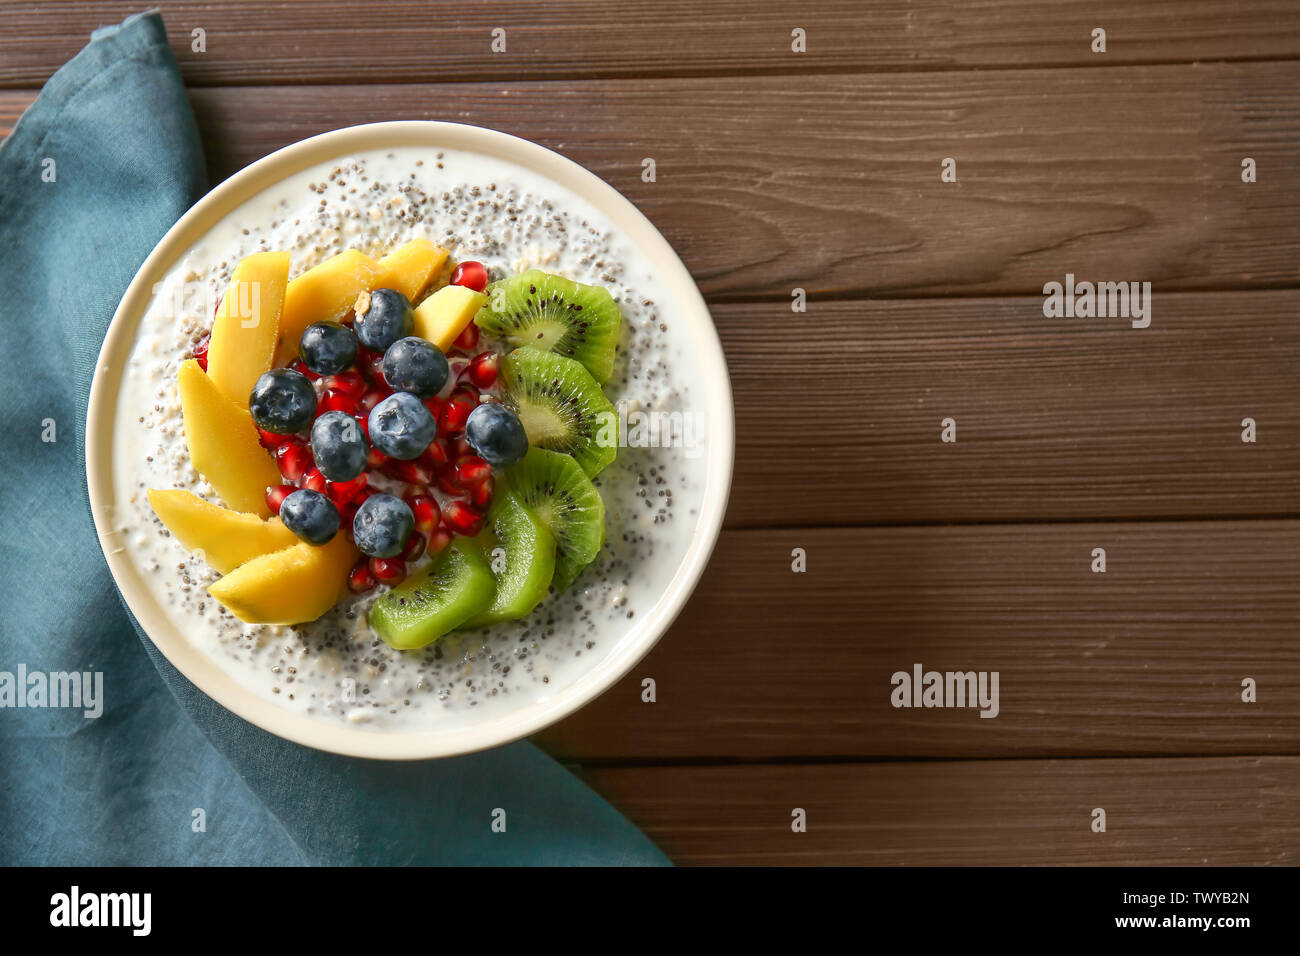 Bowl with tasty chia dessert on wooden table - Stock Image